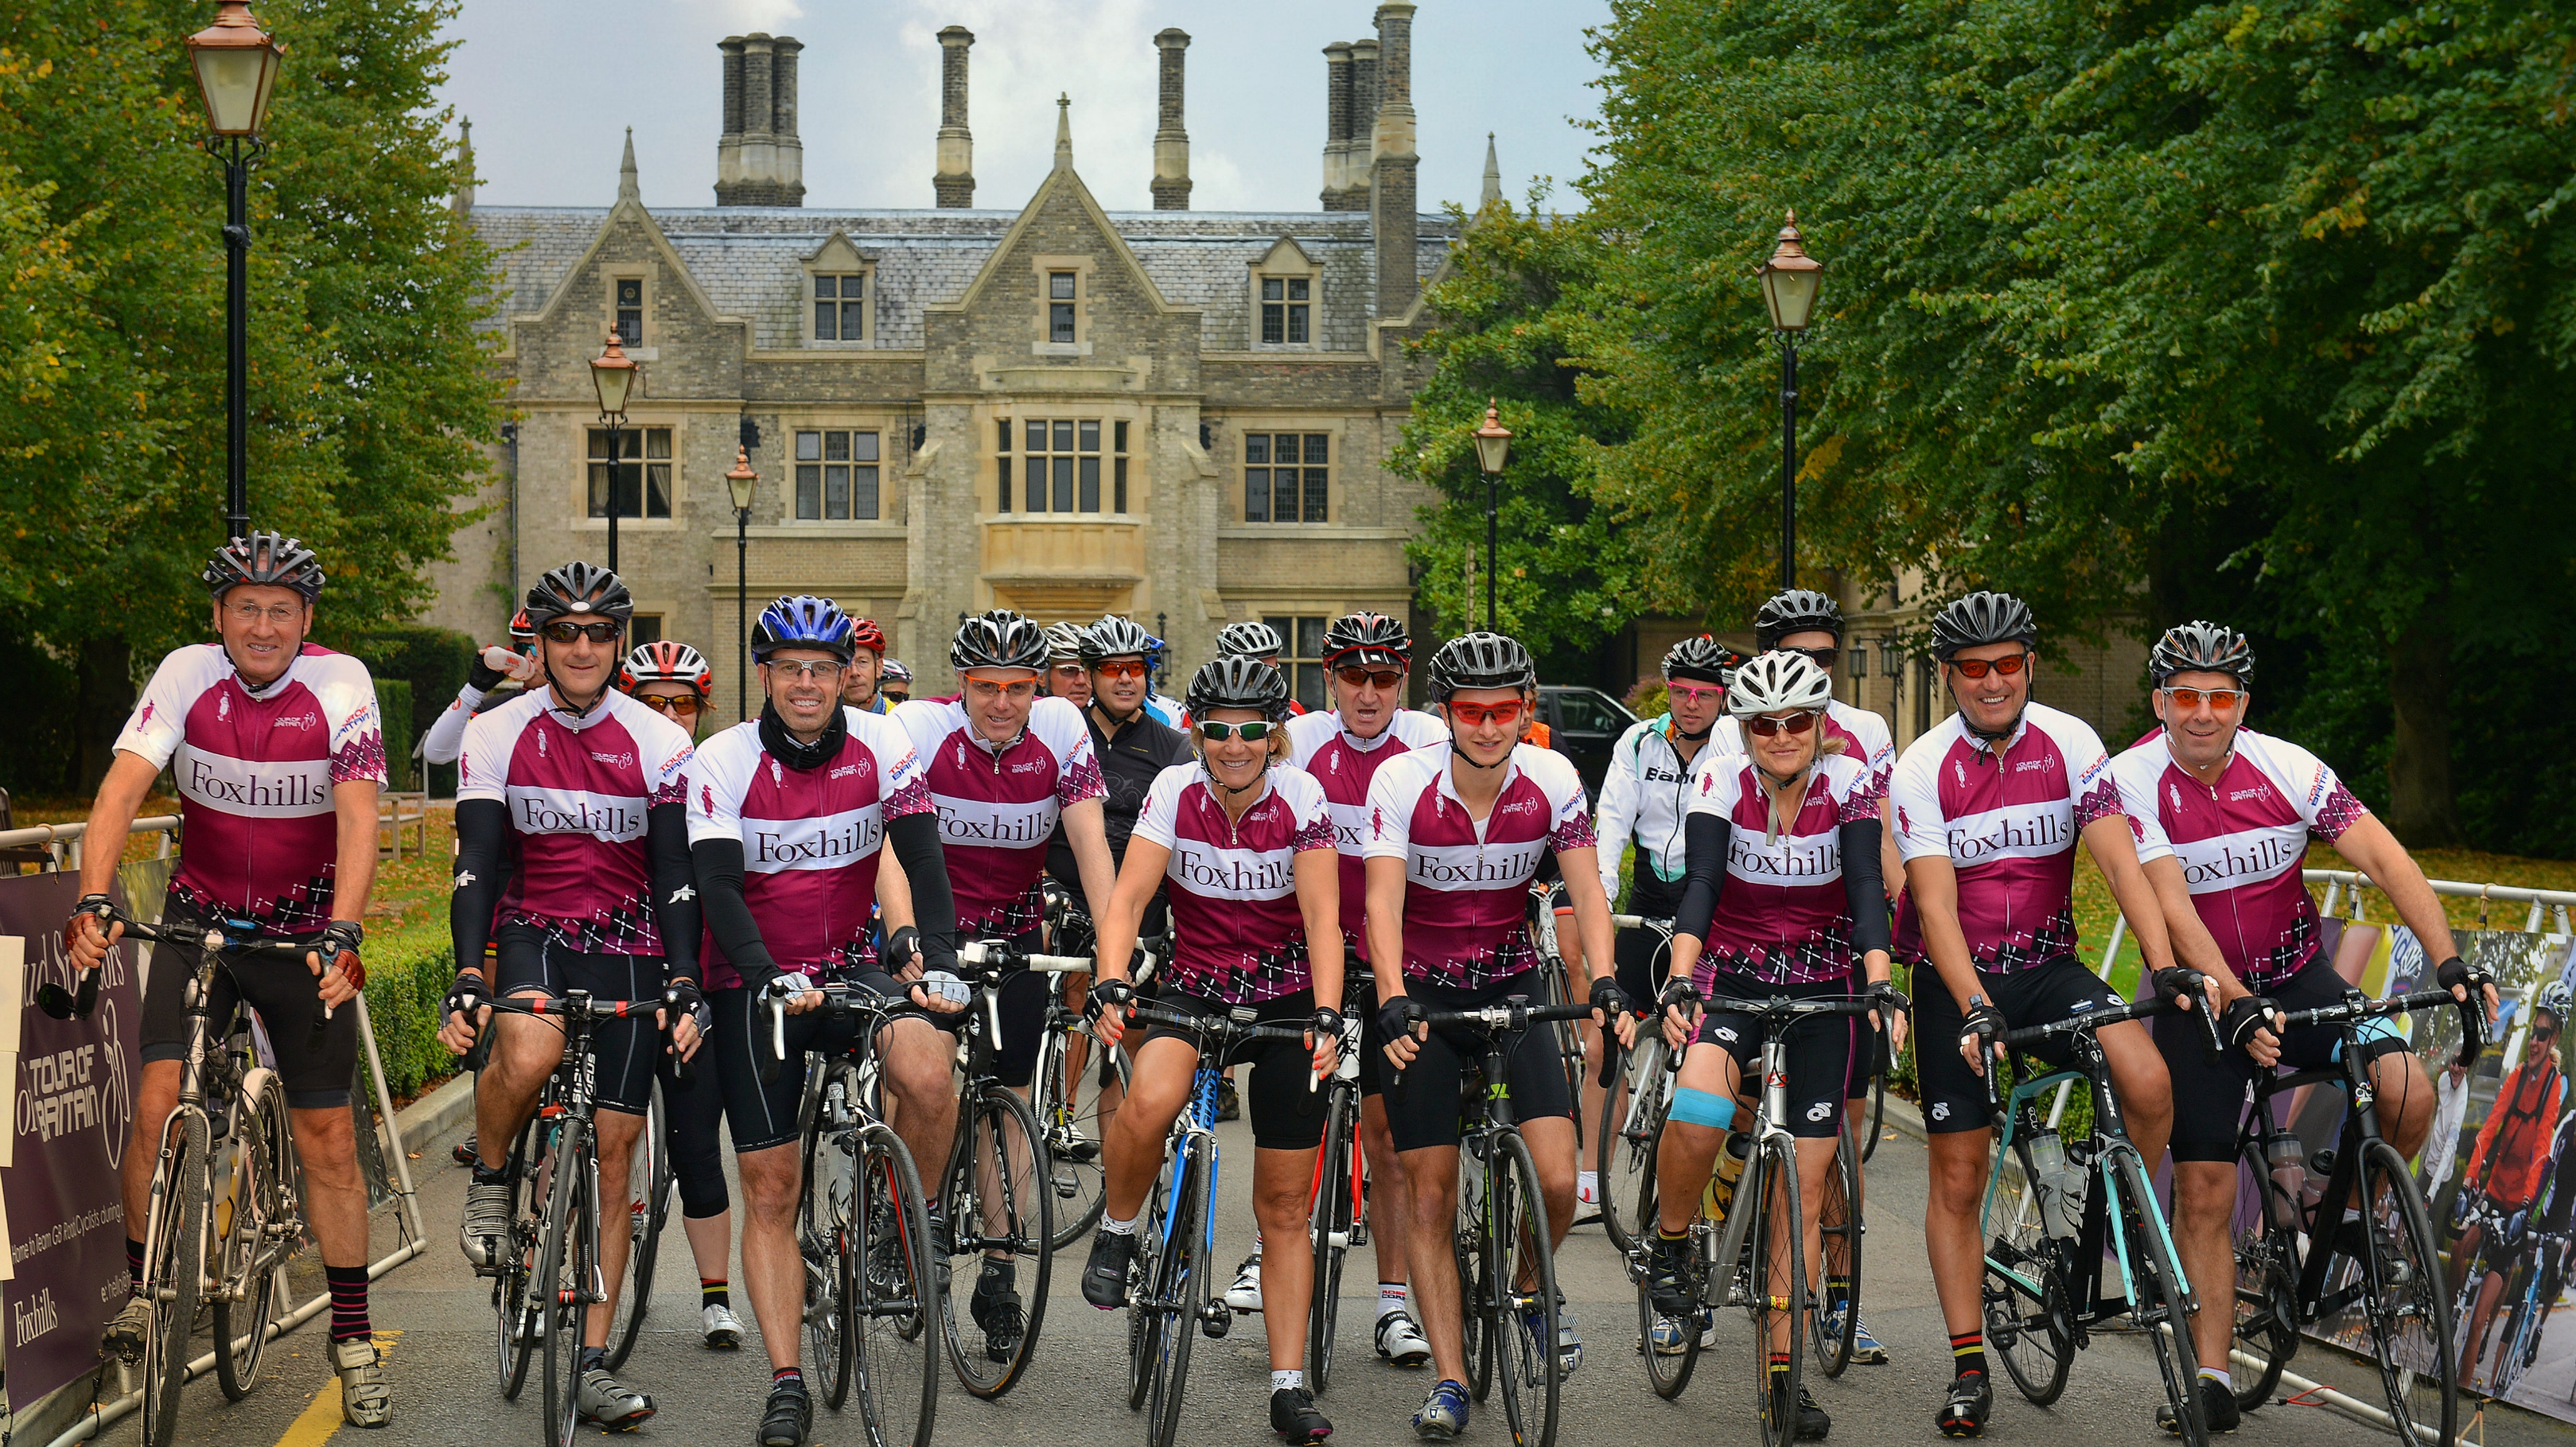 Cycle through Surrey with Foxhills Sportive